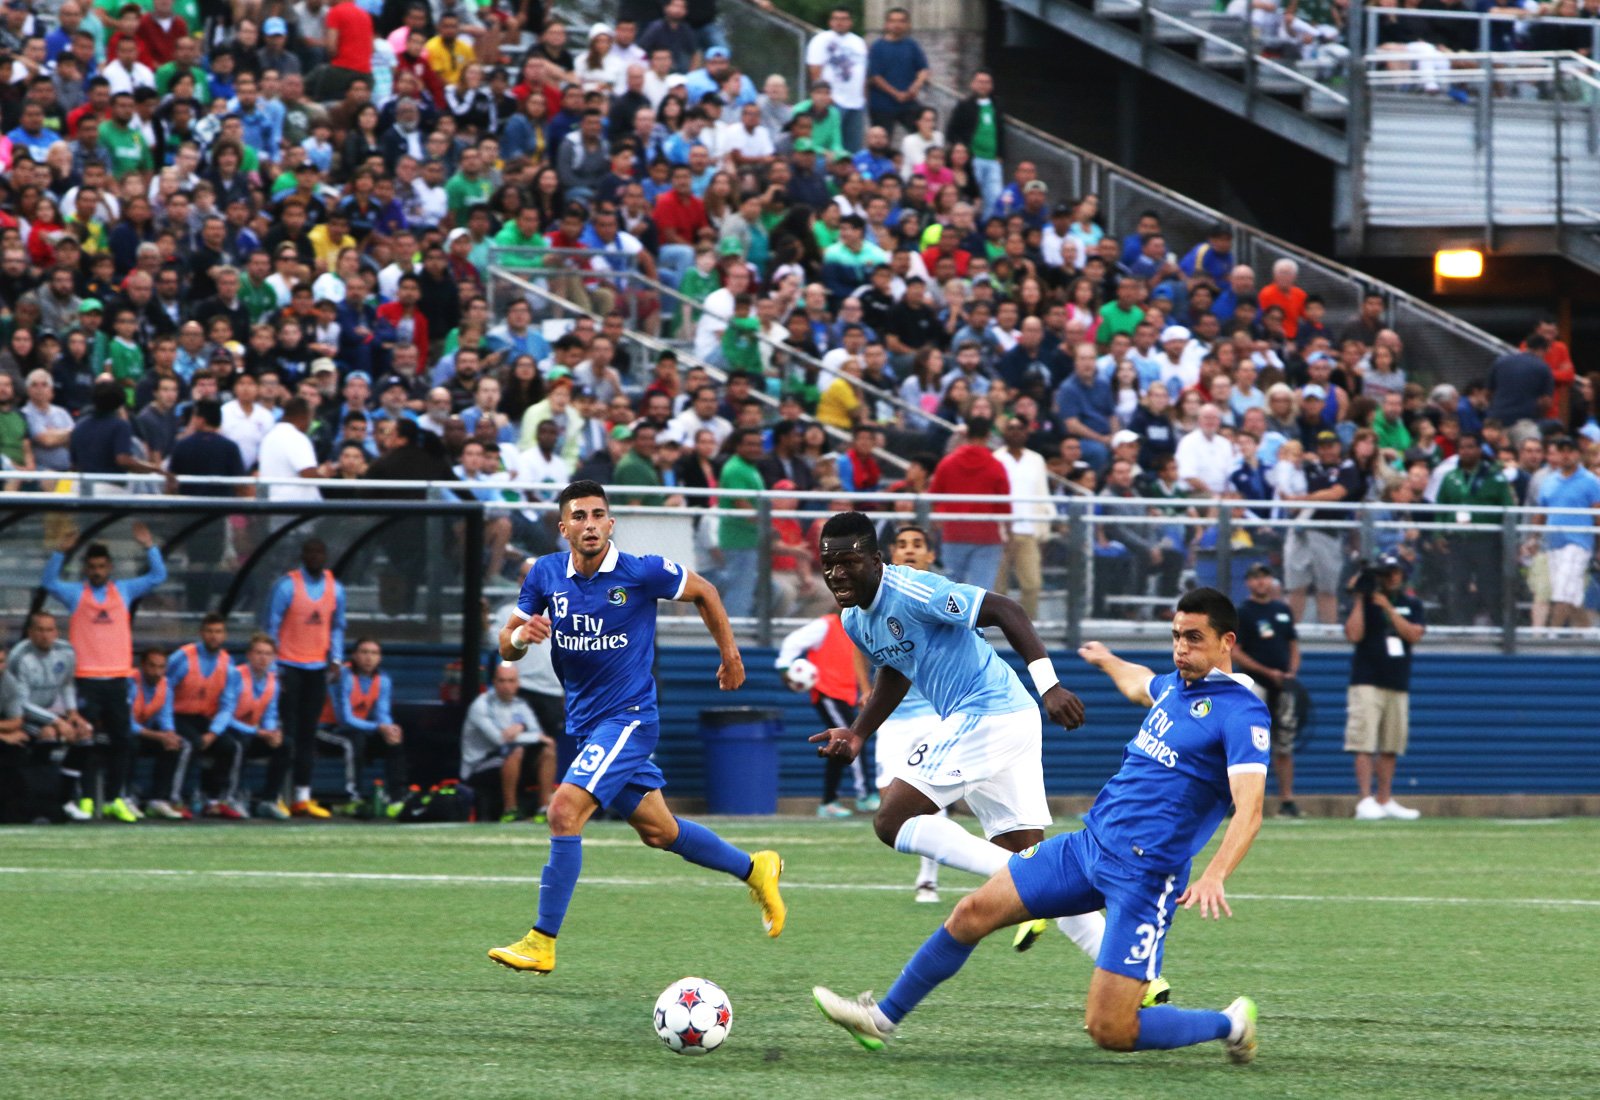 New York Cosmos defender Hunter Gorskie (3) and midfielder Sebastian Ignacio Guenzatti Varela (13) chase after NYCFC midfielder Kwadwo Poku (88) as he runs toward goal.